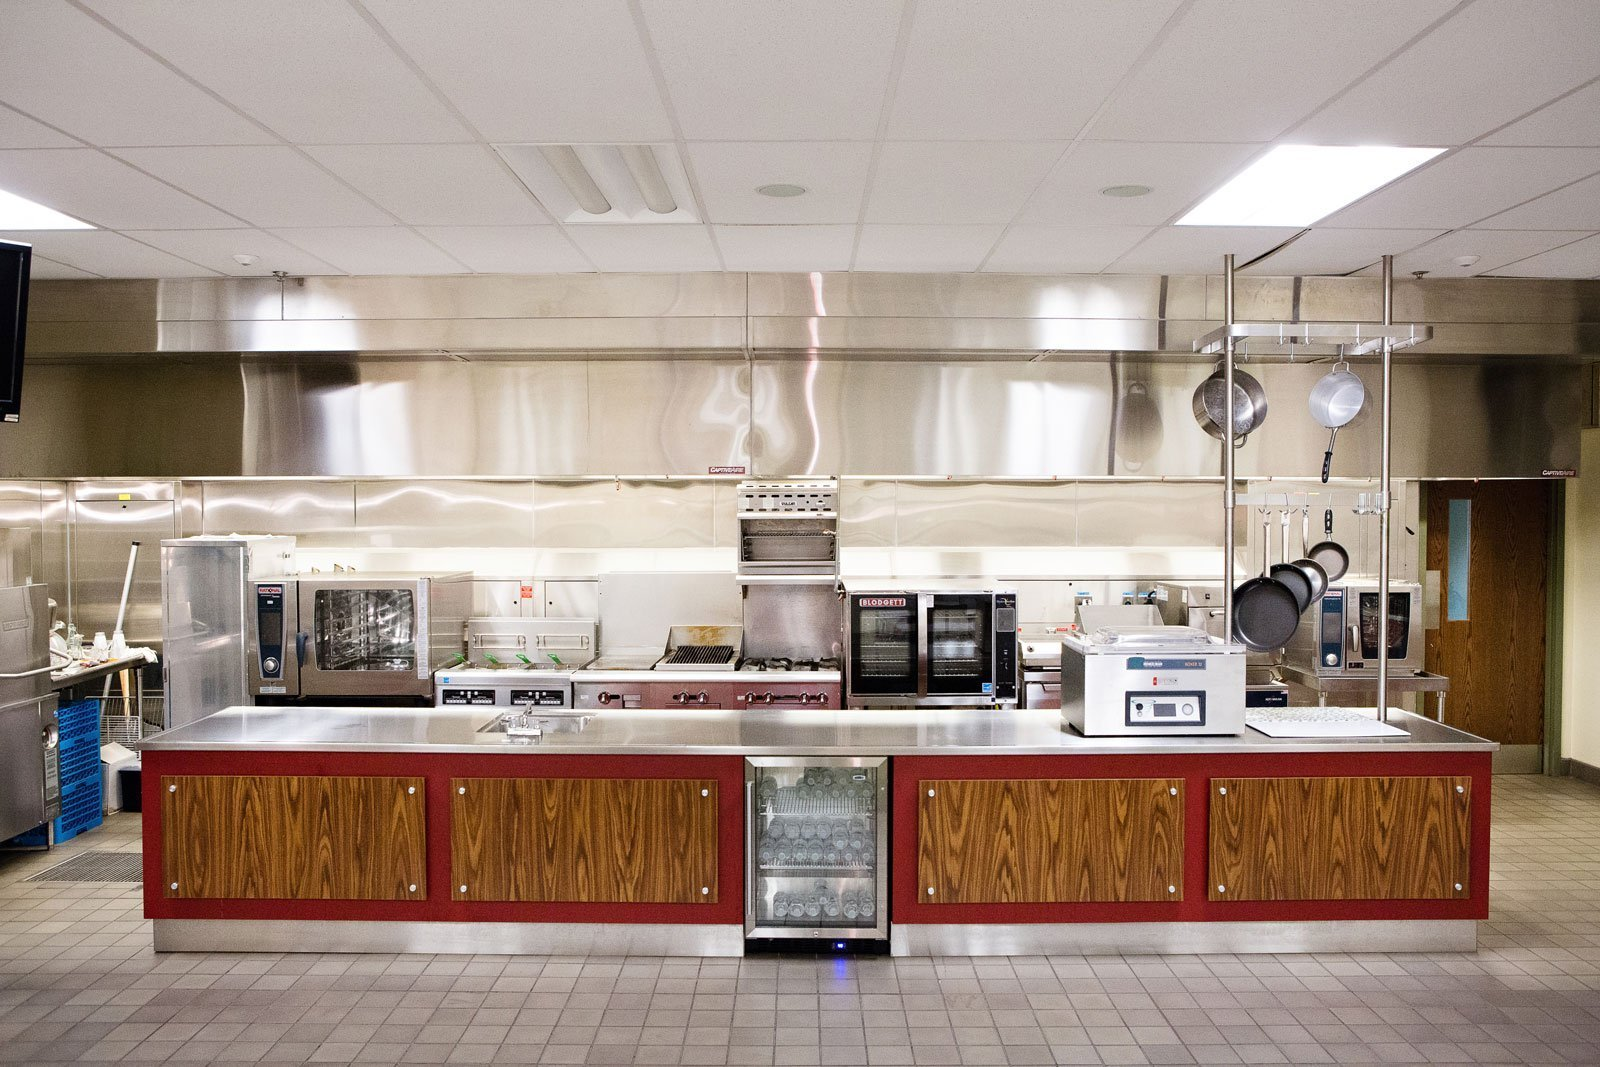 The PJP Culinary Academy